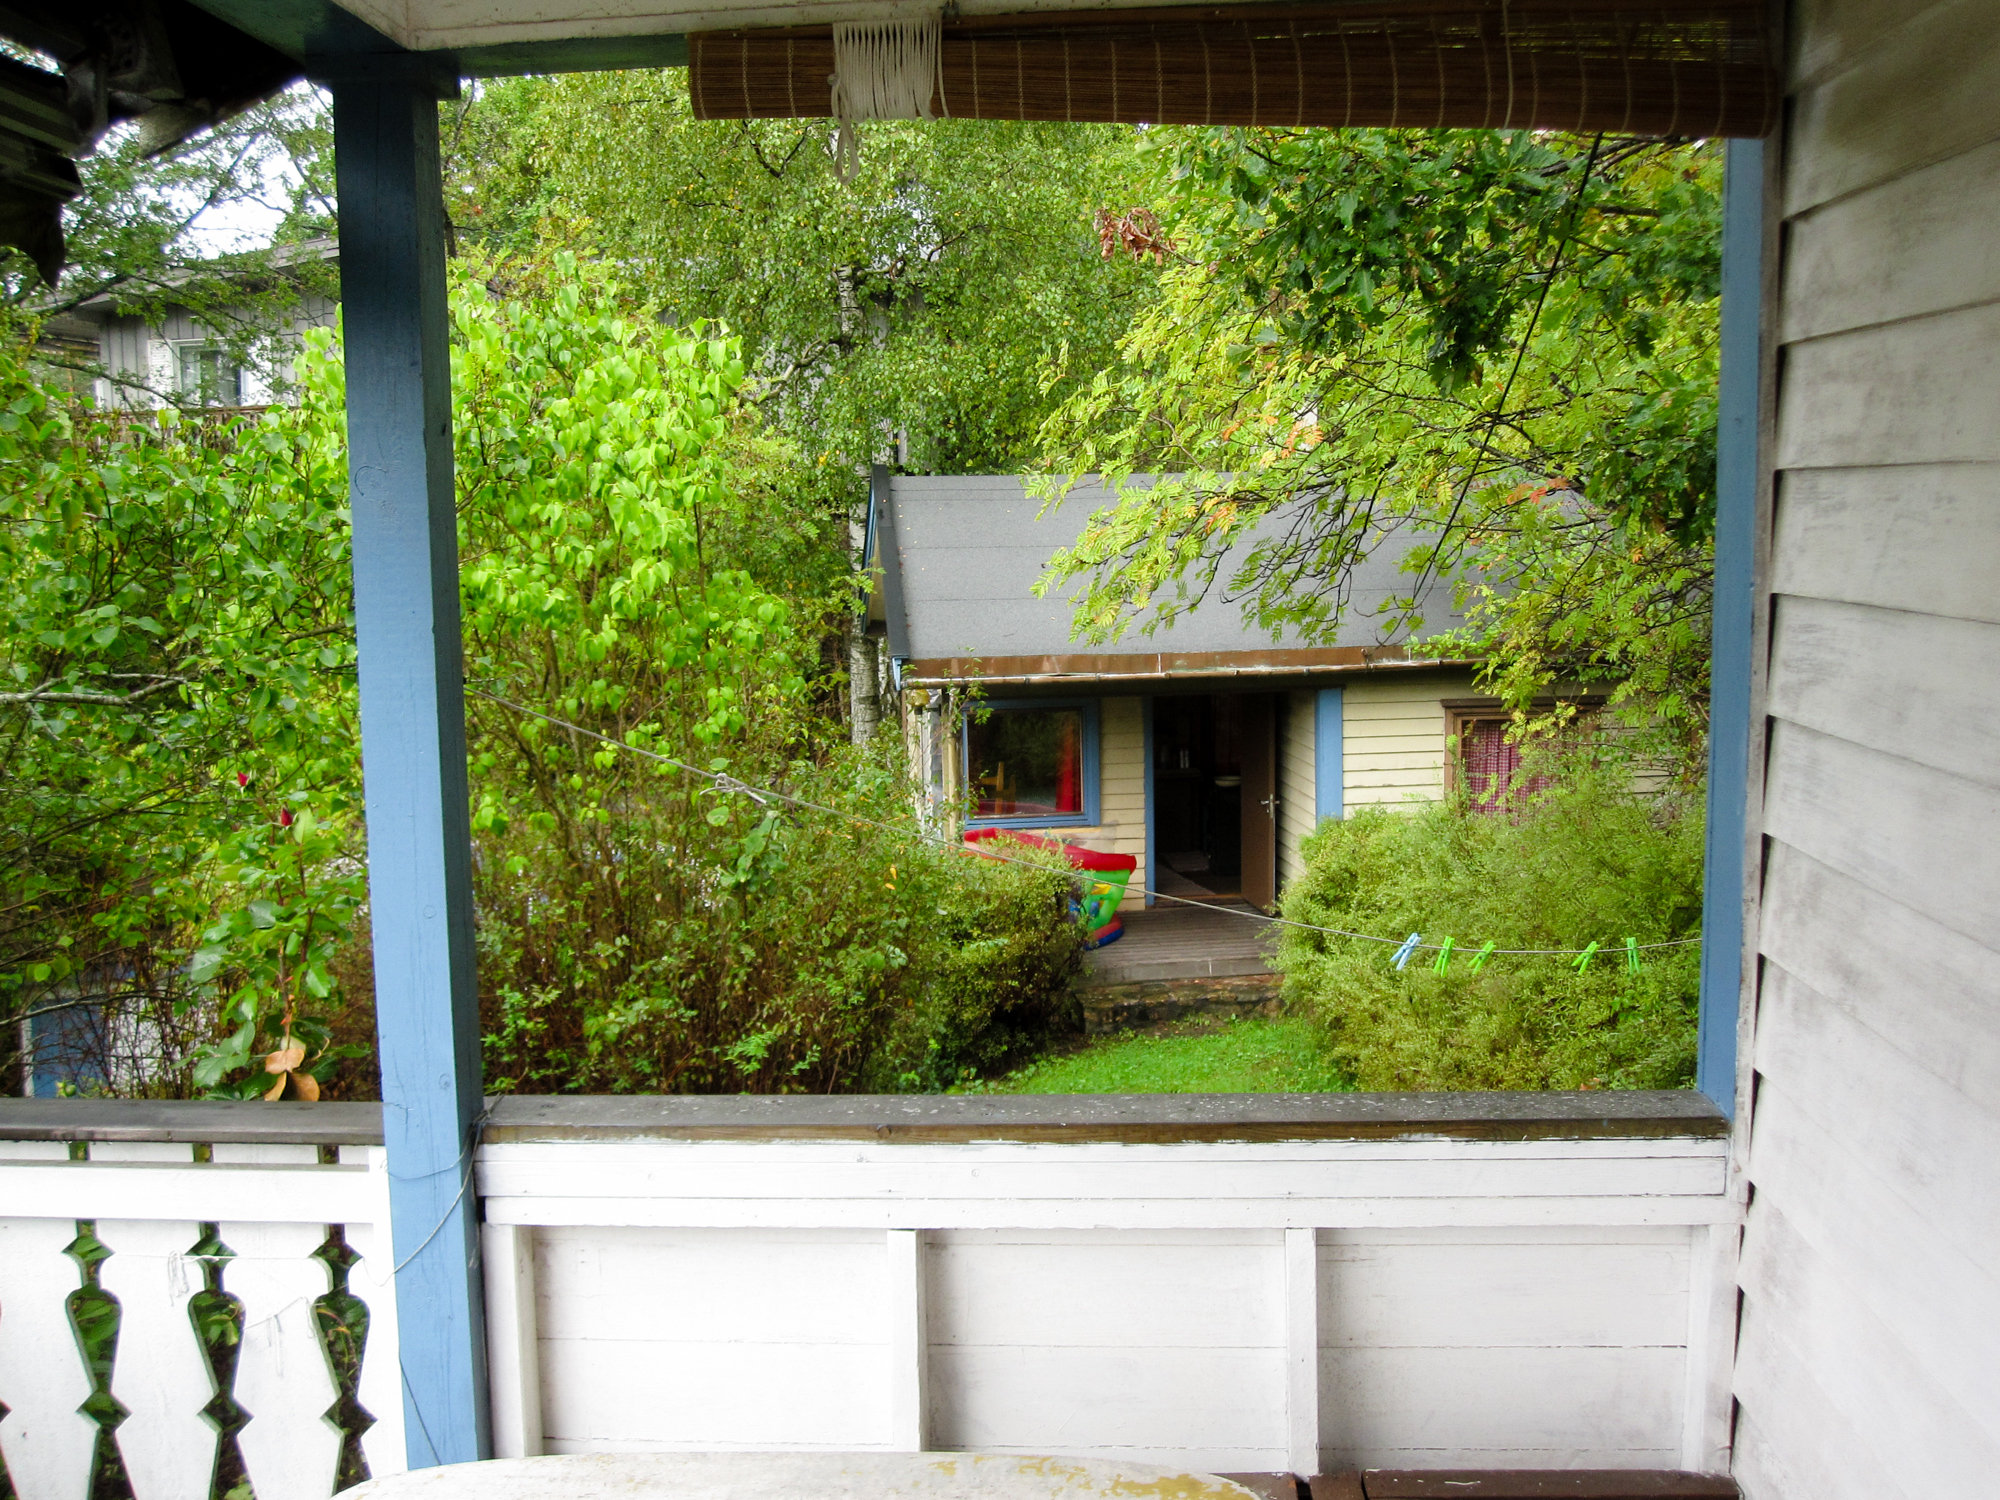 The existing sleeping cabin, seen the main cabin